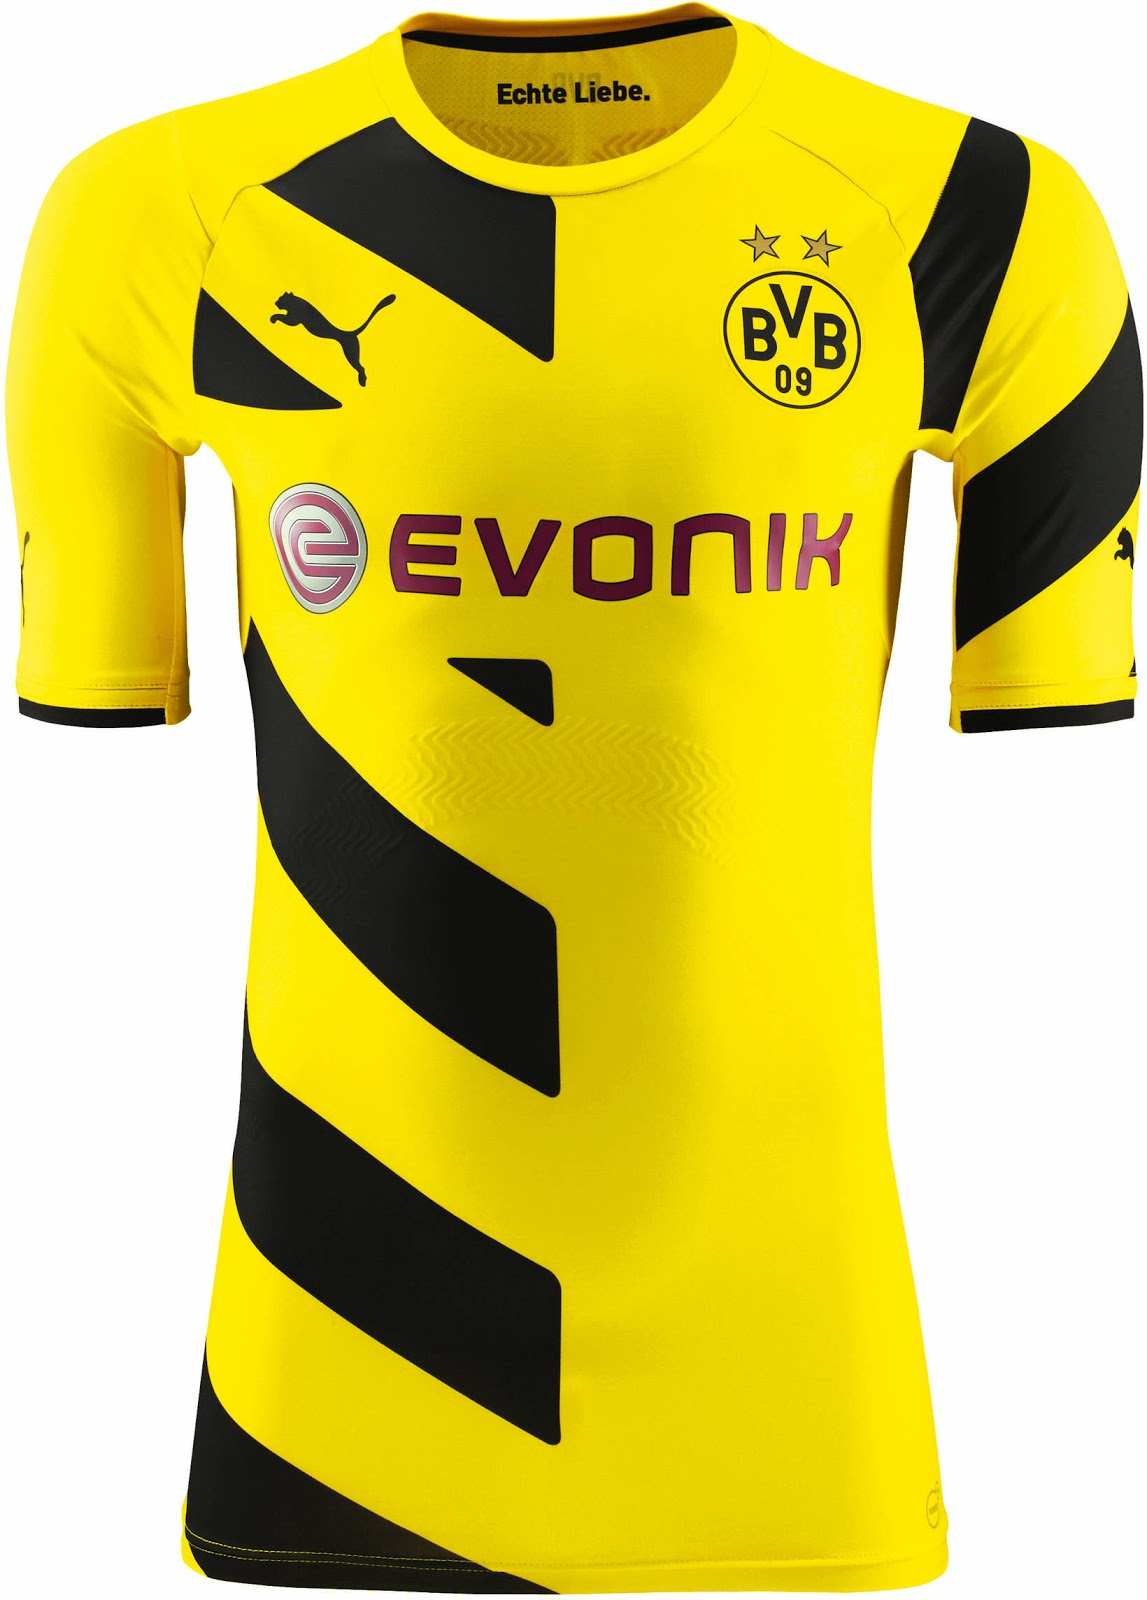 new borussia dortmund 14 15 kits released footy headlines. Black Bedroom Furniture Sets. Home Design Ideas